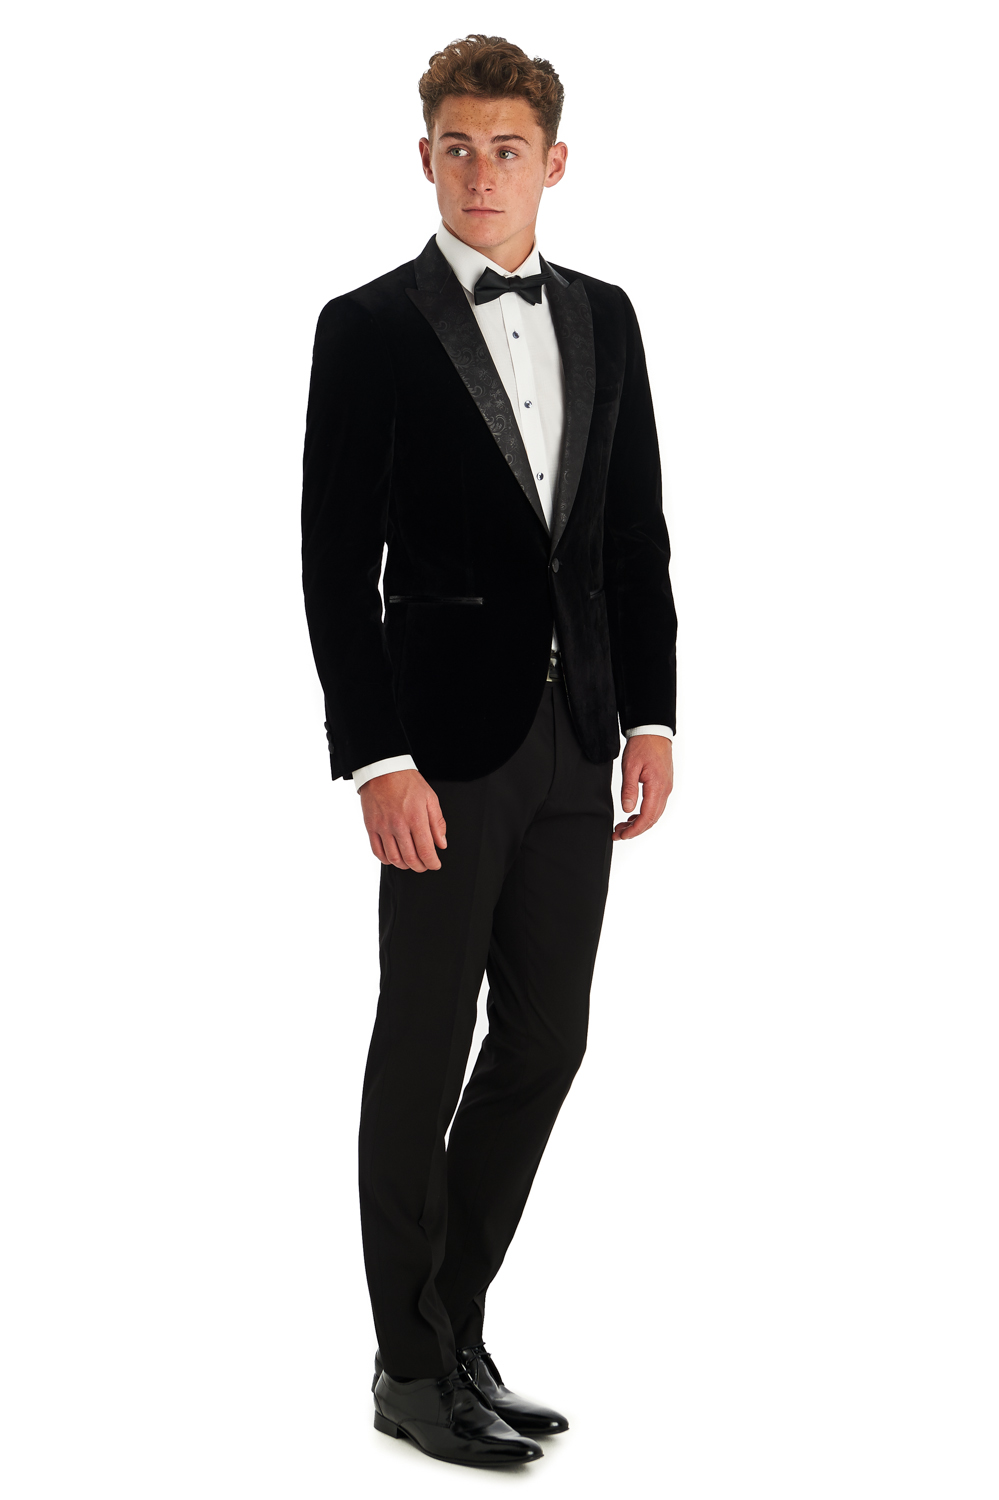 Men's Velvet Sport Coat & Velvet Sport Jacket A well-crafted blazer can easily take you from a business meeting to a date to a night out with your friends, and the men's velvet blazer has established an excellent reputation.